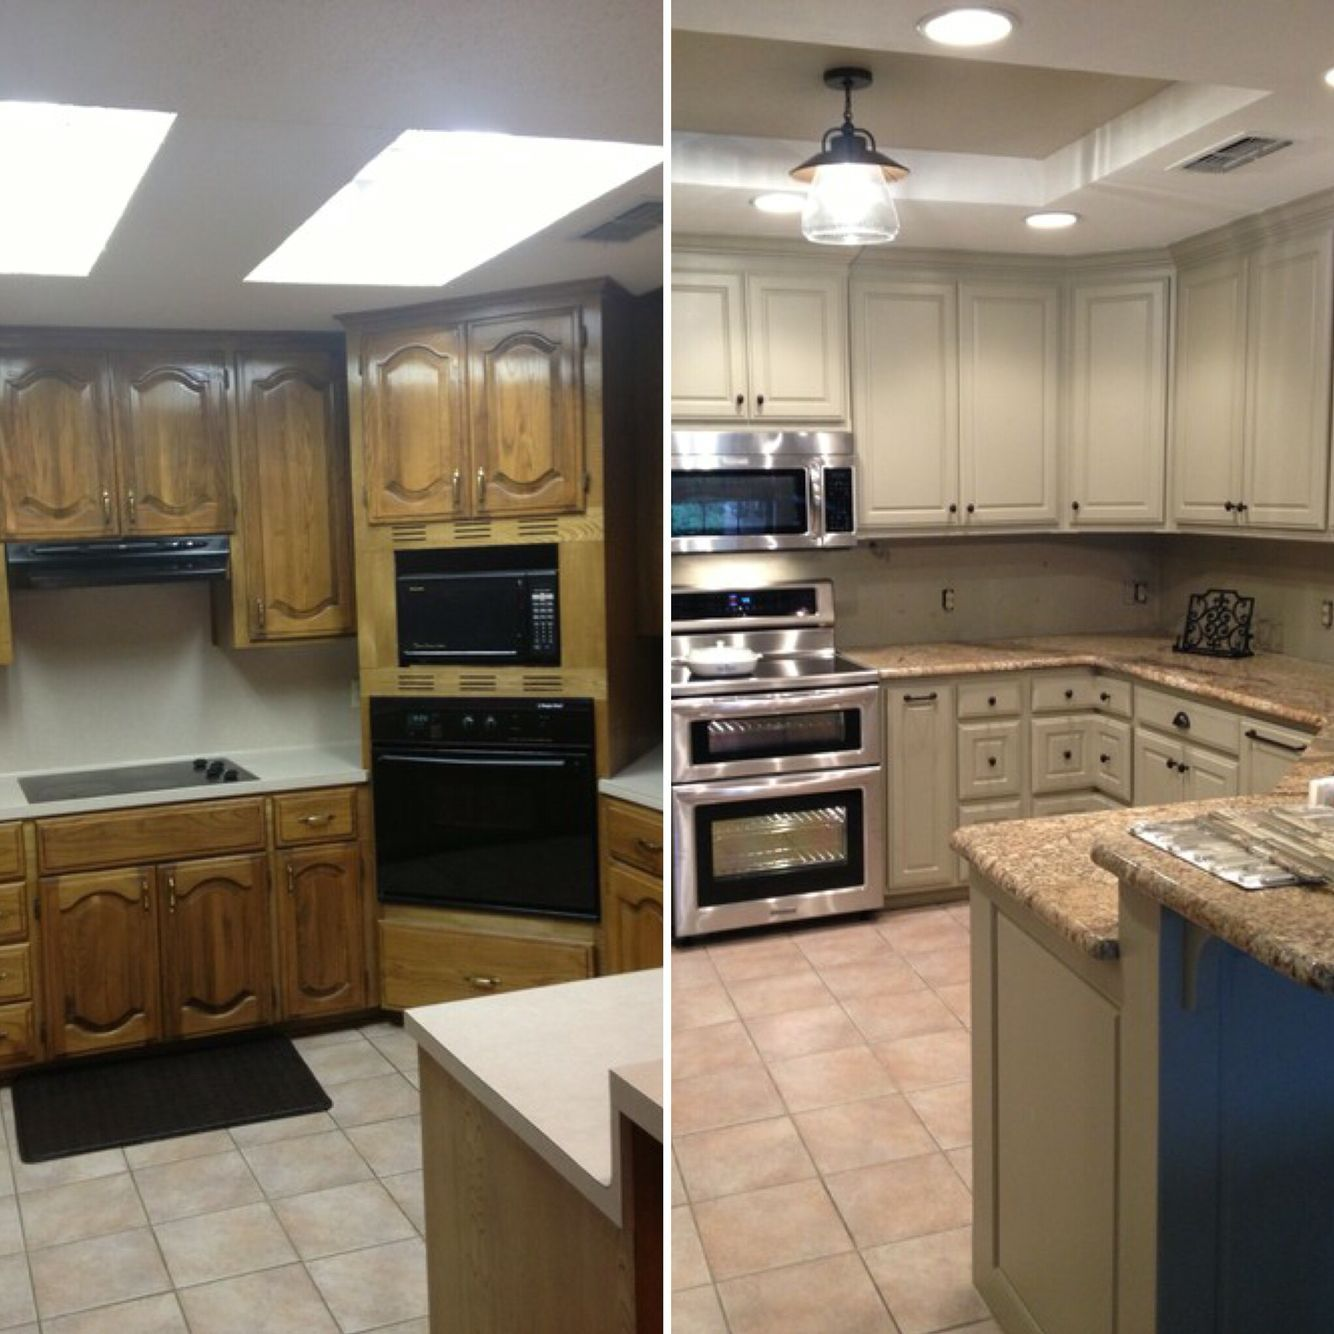 Before And After For Updating Drop Ceiling Kitchen With